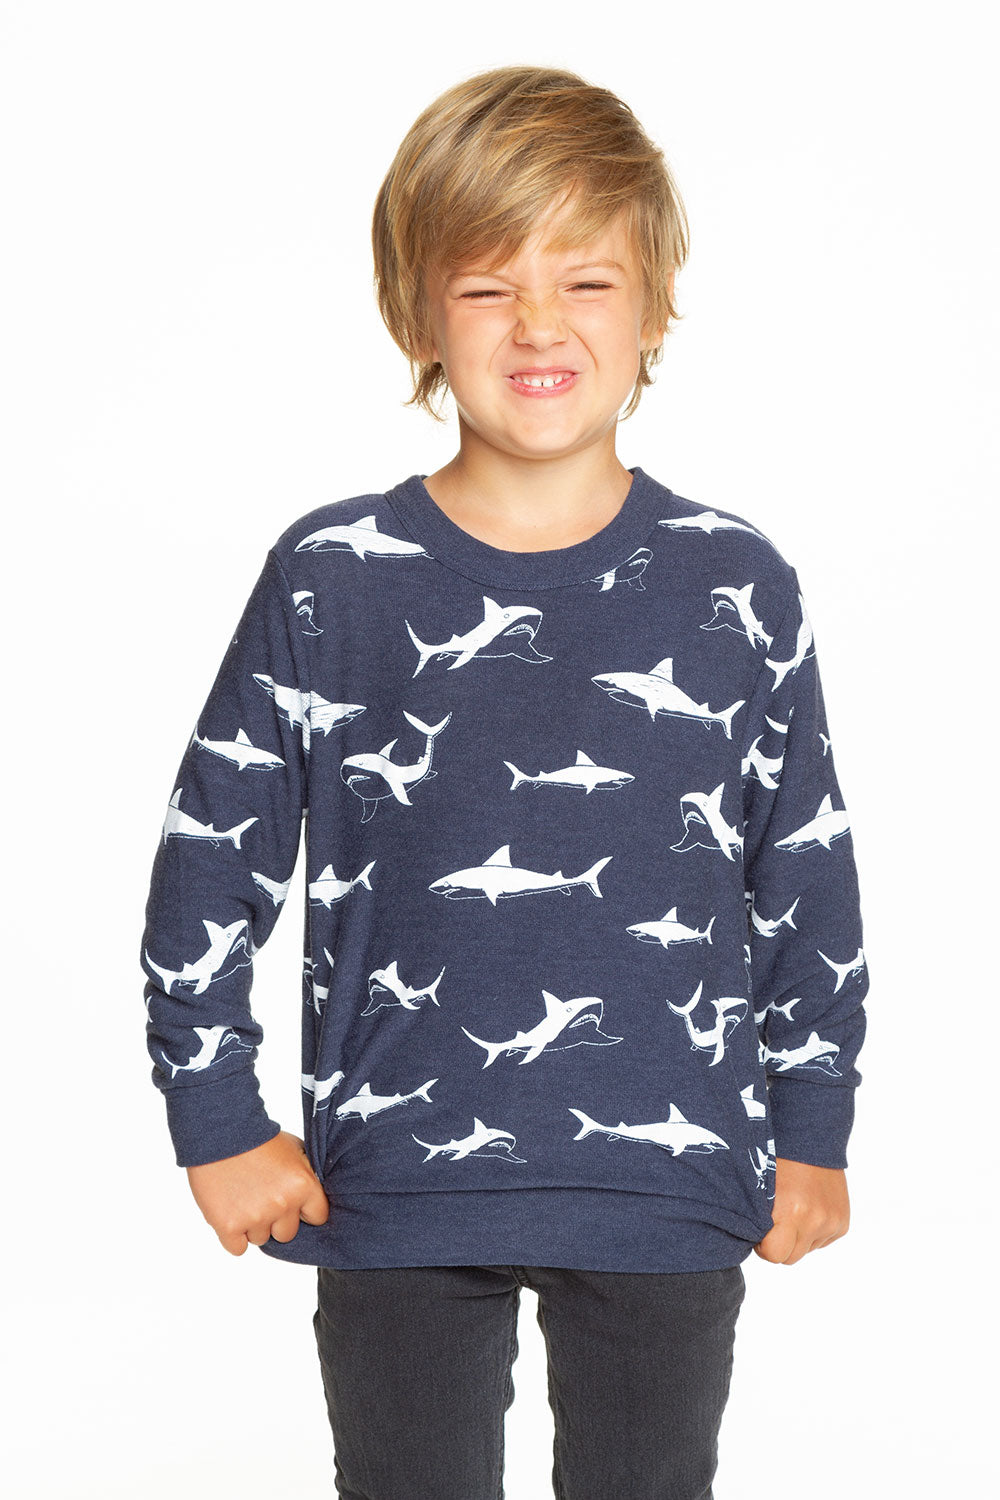 Happy Sharks BOYS chaserbrand4.myshopify.com